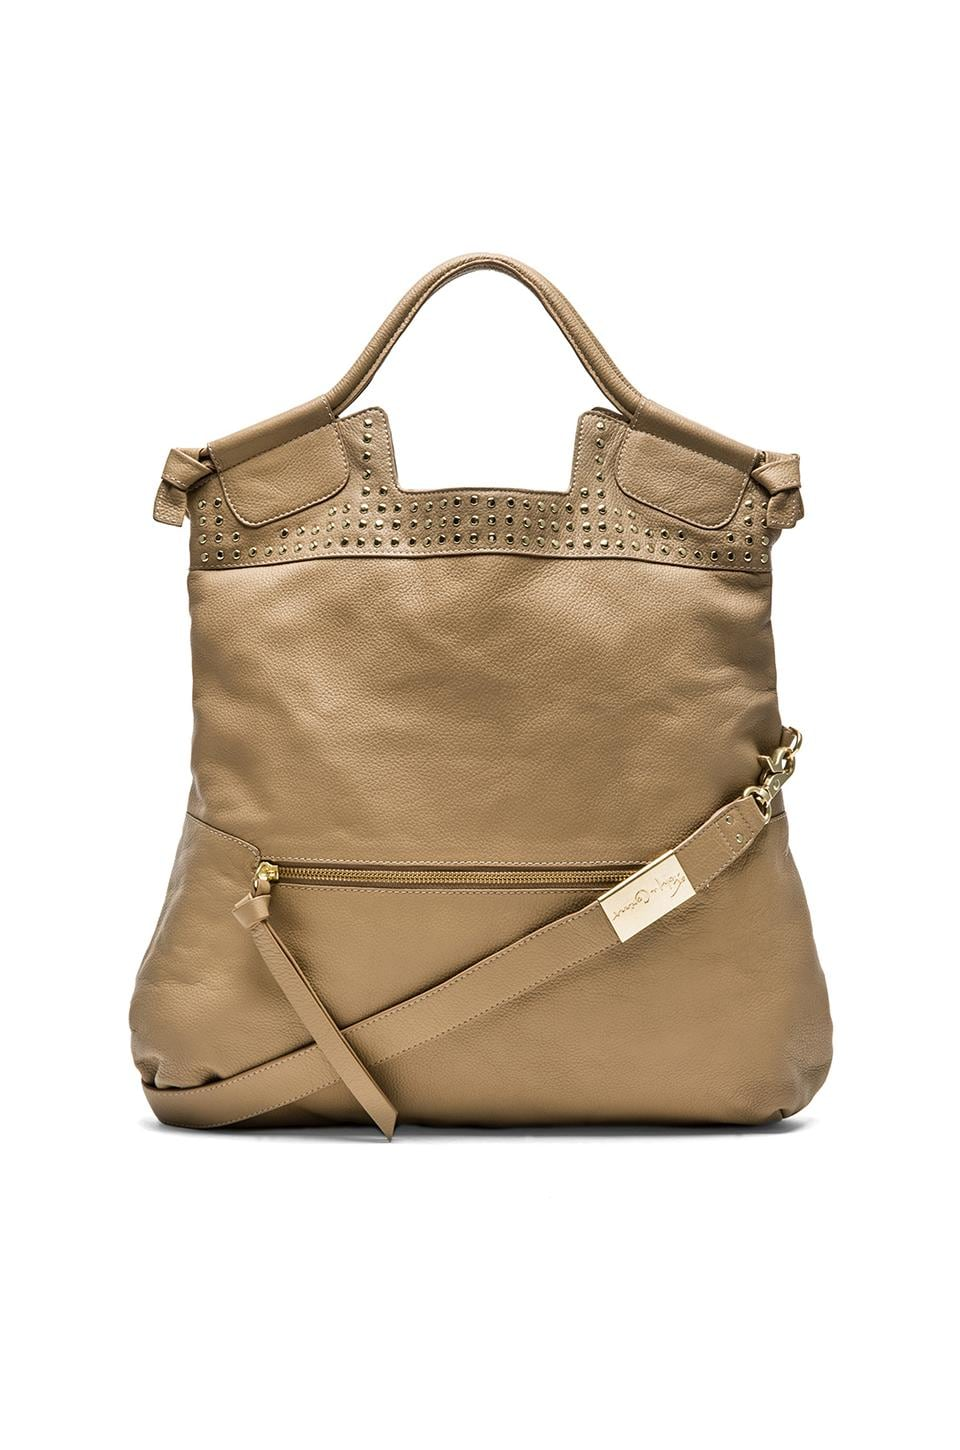 Foley + Corinna Moto Mid City Tote in Almond